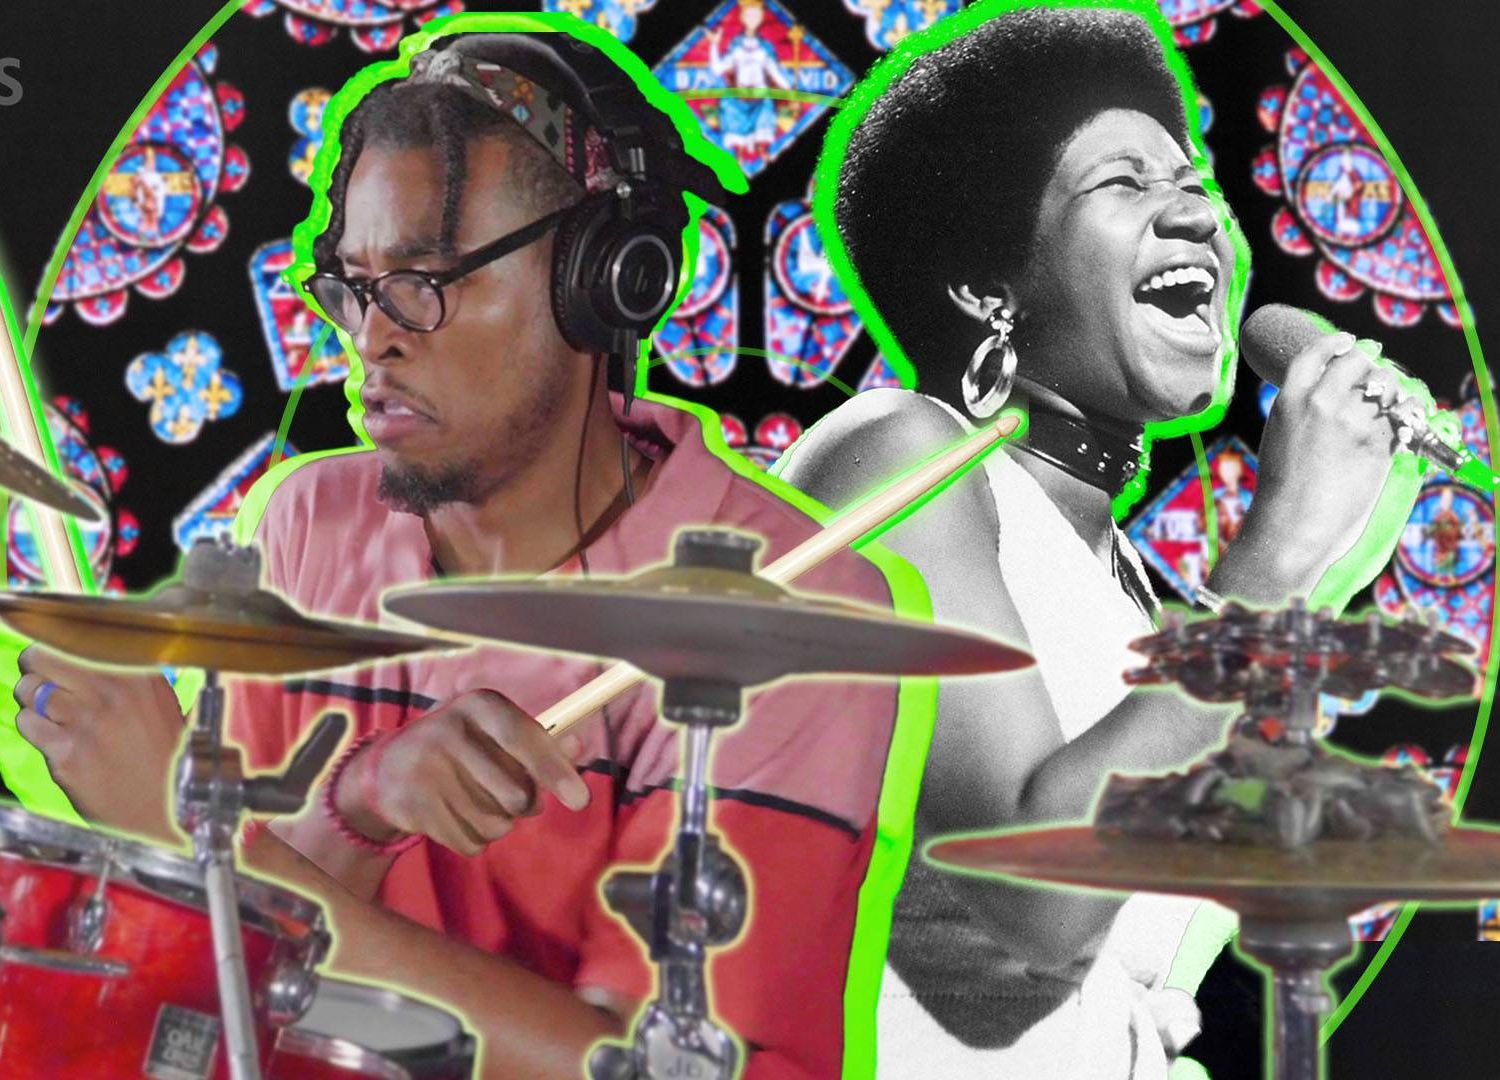 Graphic mosaic combining a color image of a man playing drums and a black and white image of Aretha Franklin. Rewire PBS Gospel